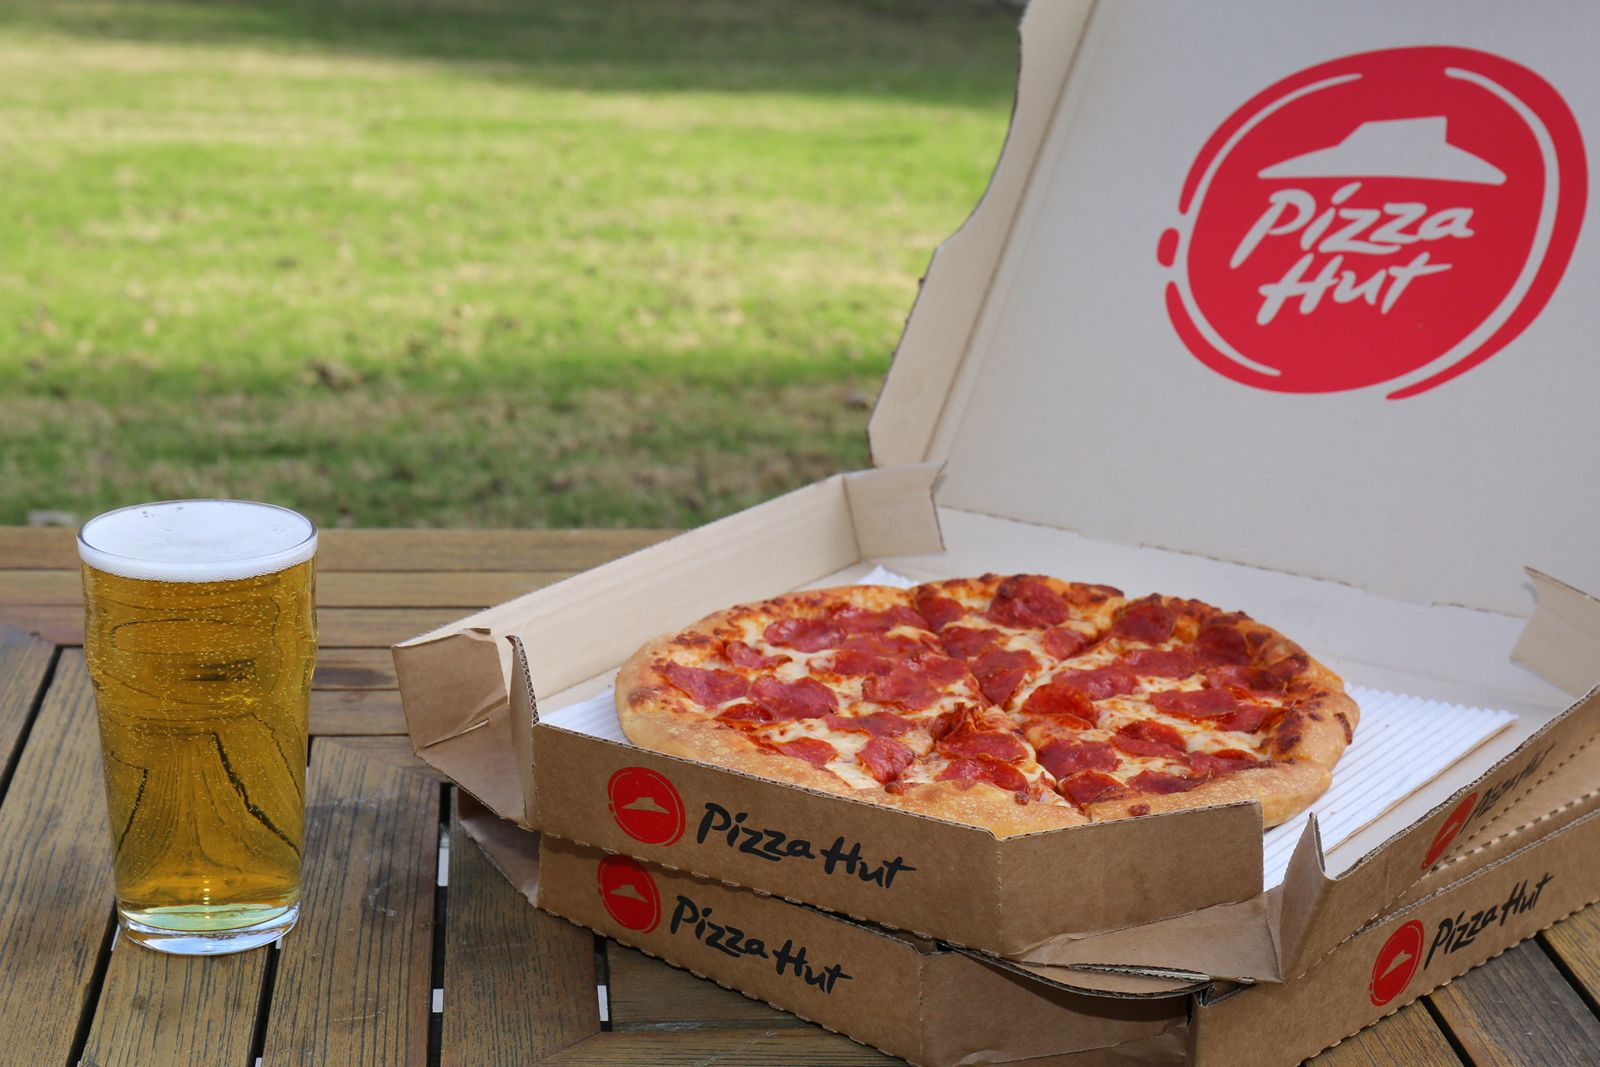 Pizza Hut Beer Delivery Expands To Nearly 300 Restaurants Ahead Of